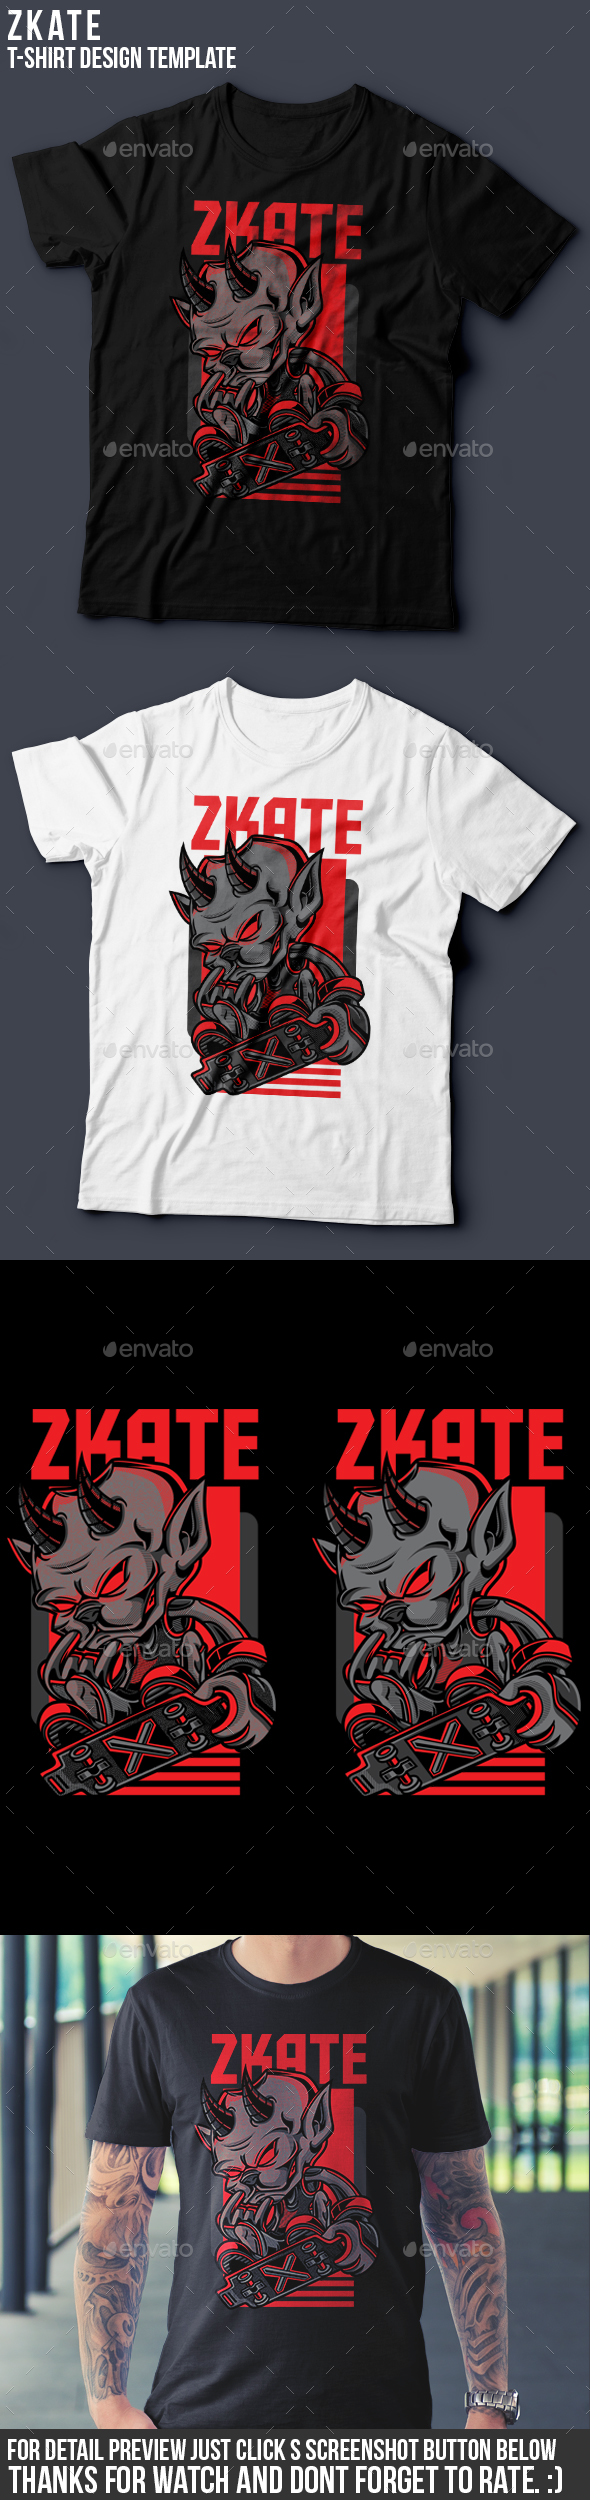 Zkate T-Shirt Design - Sports & Teams T-Shirts